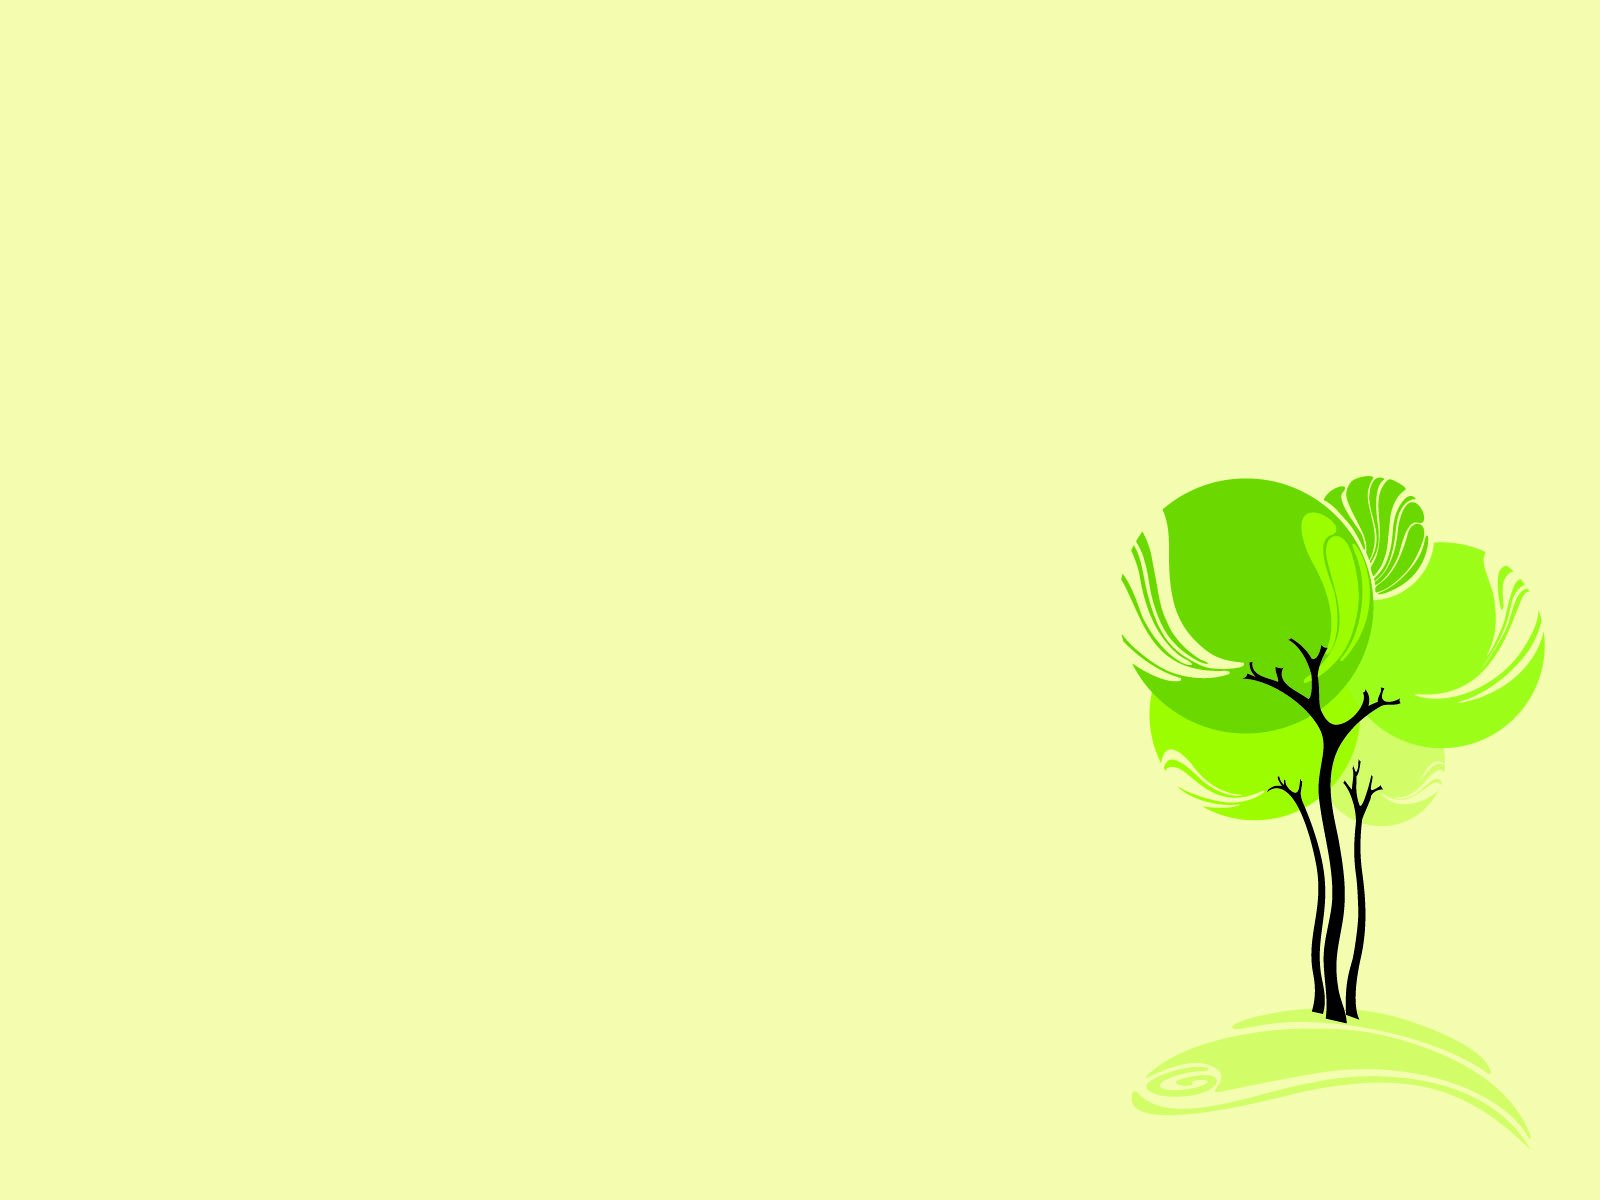 Email Template Background Image Unique Green Design Tree Backgrounds Nature Templates